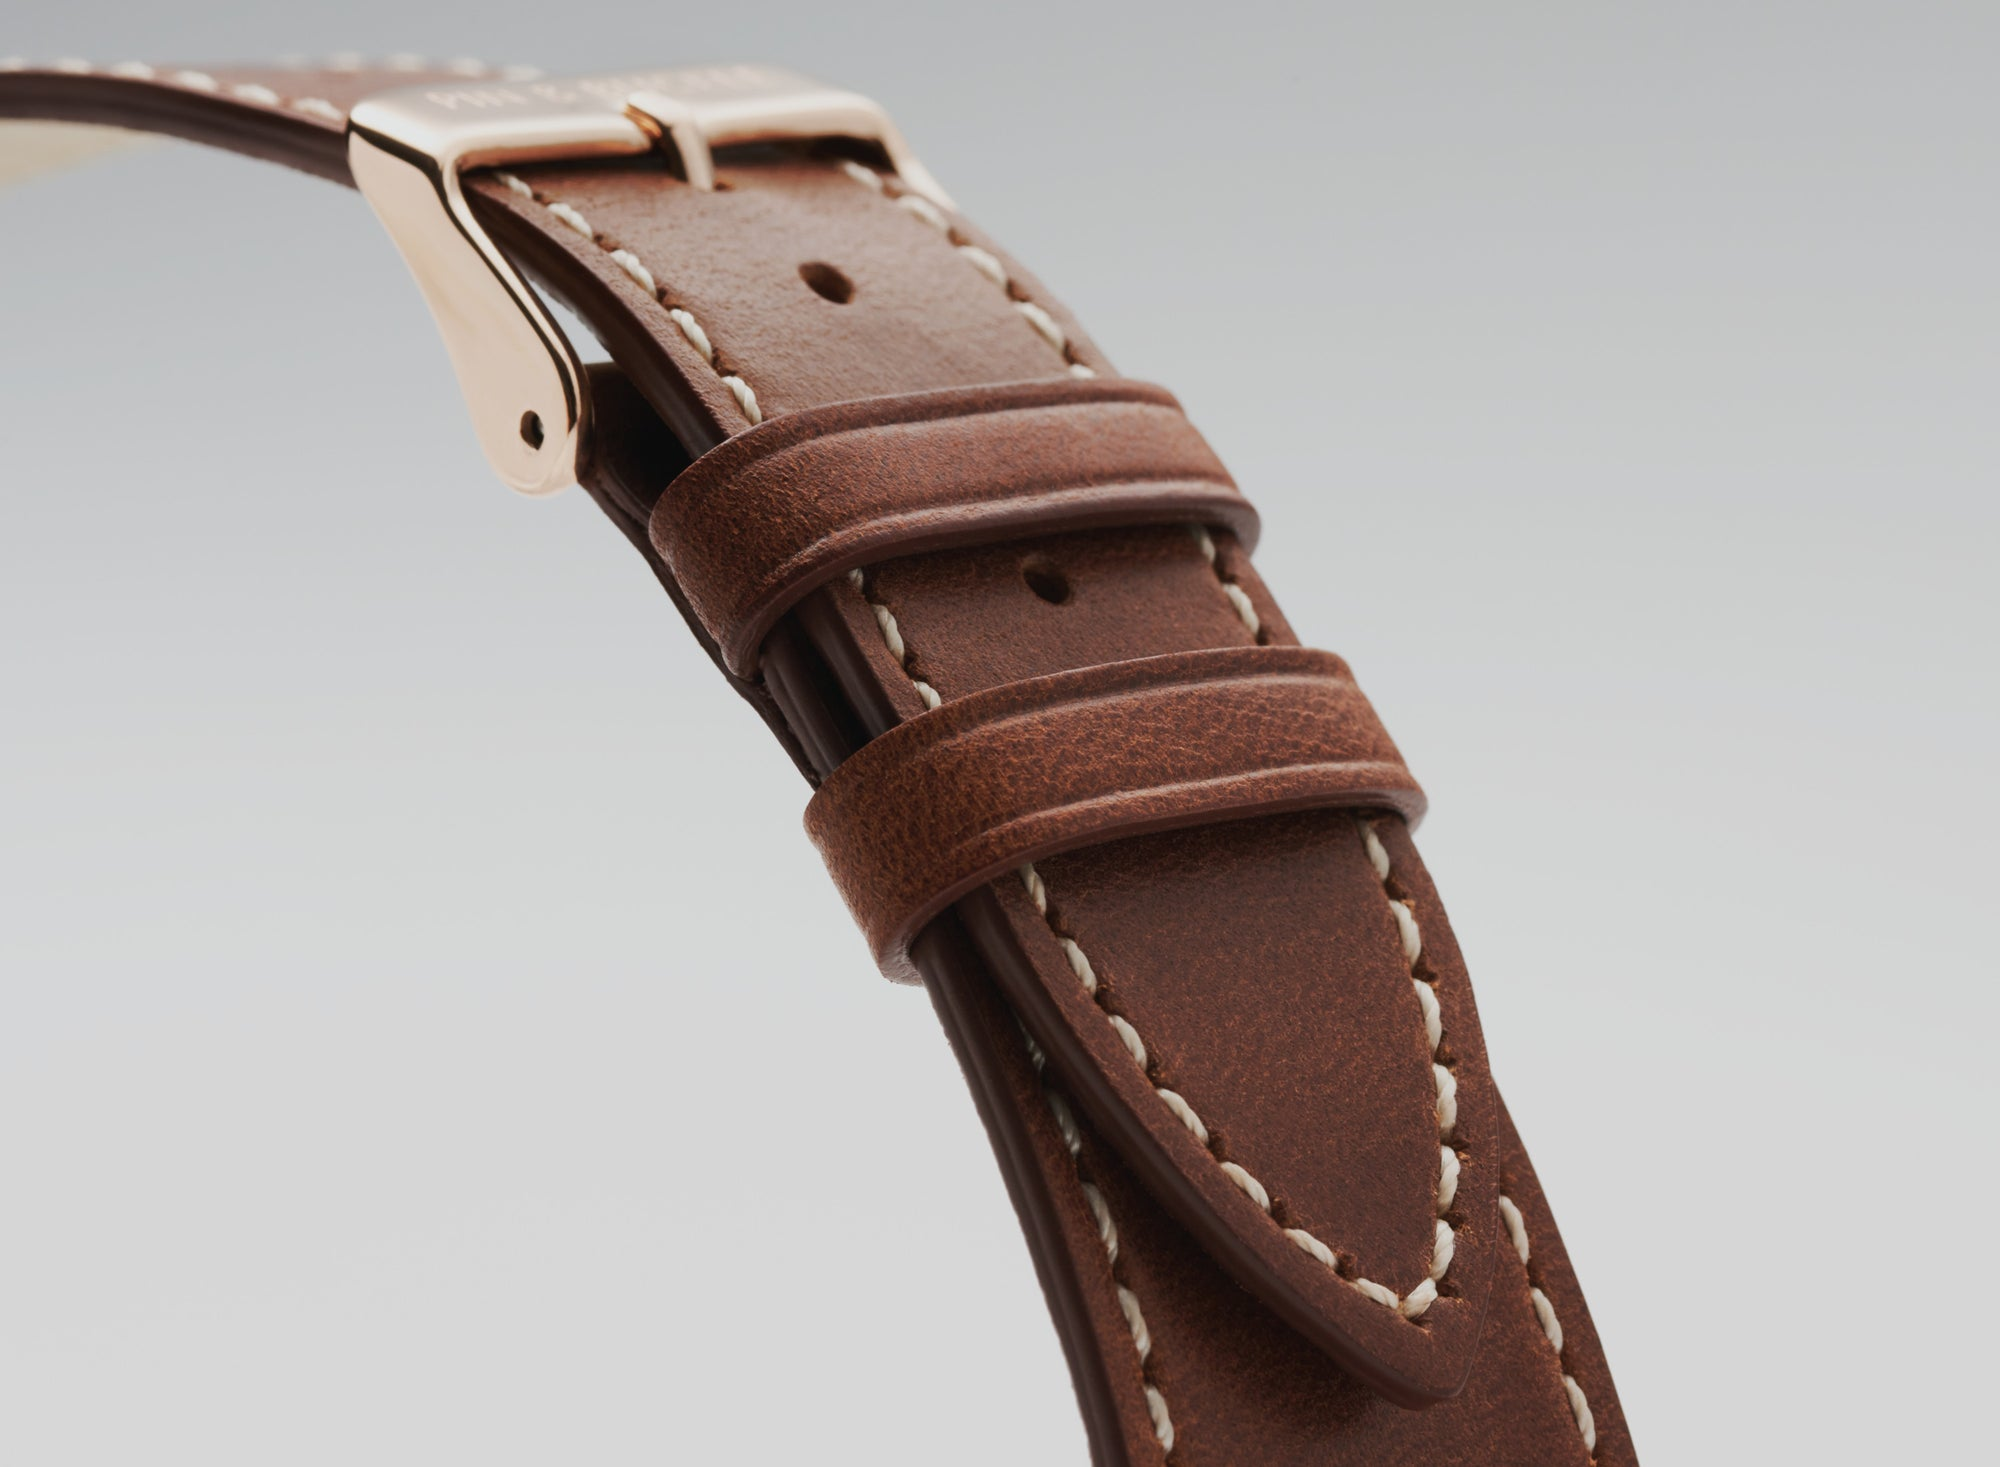 Pin and Buckle Apple Watch Bands - Full Grain Vegetable Tanned Leather - Luxe - Chestnut Brown - Banner